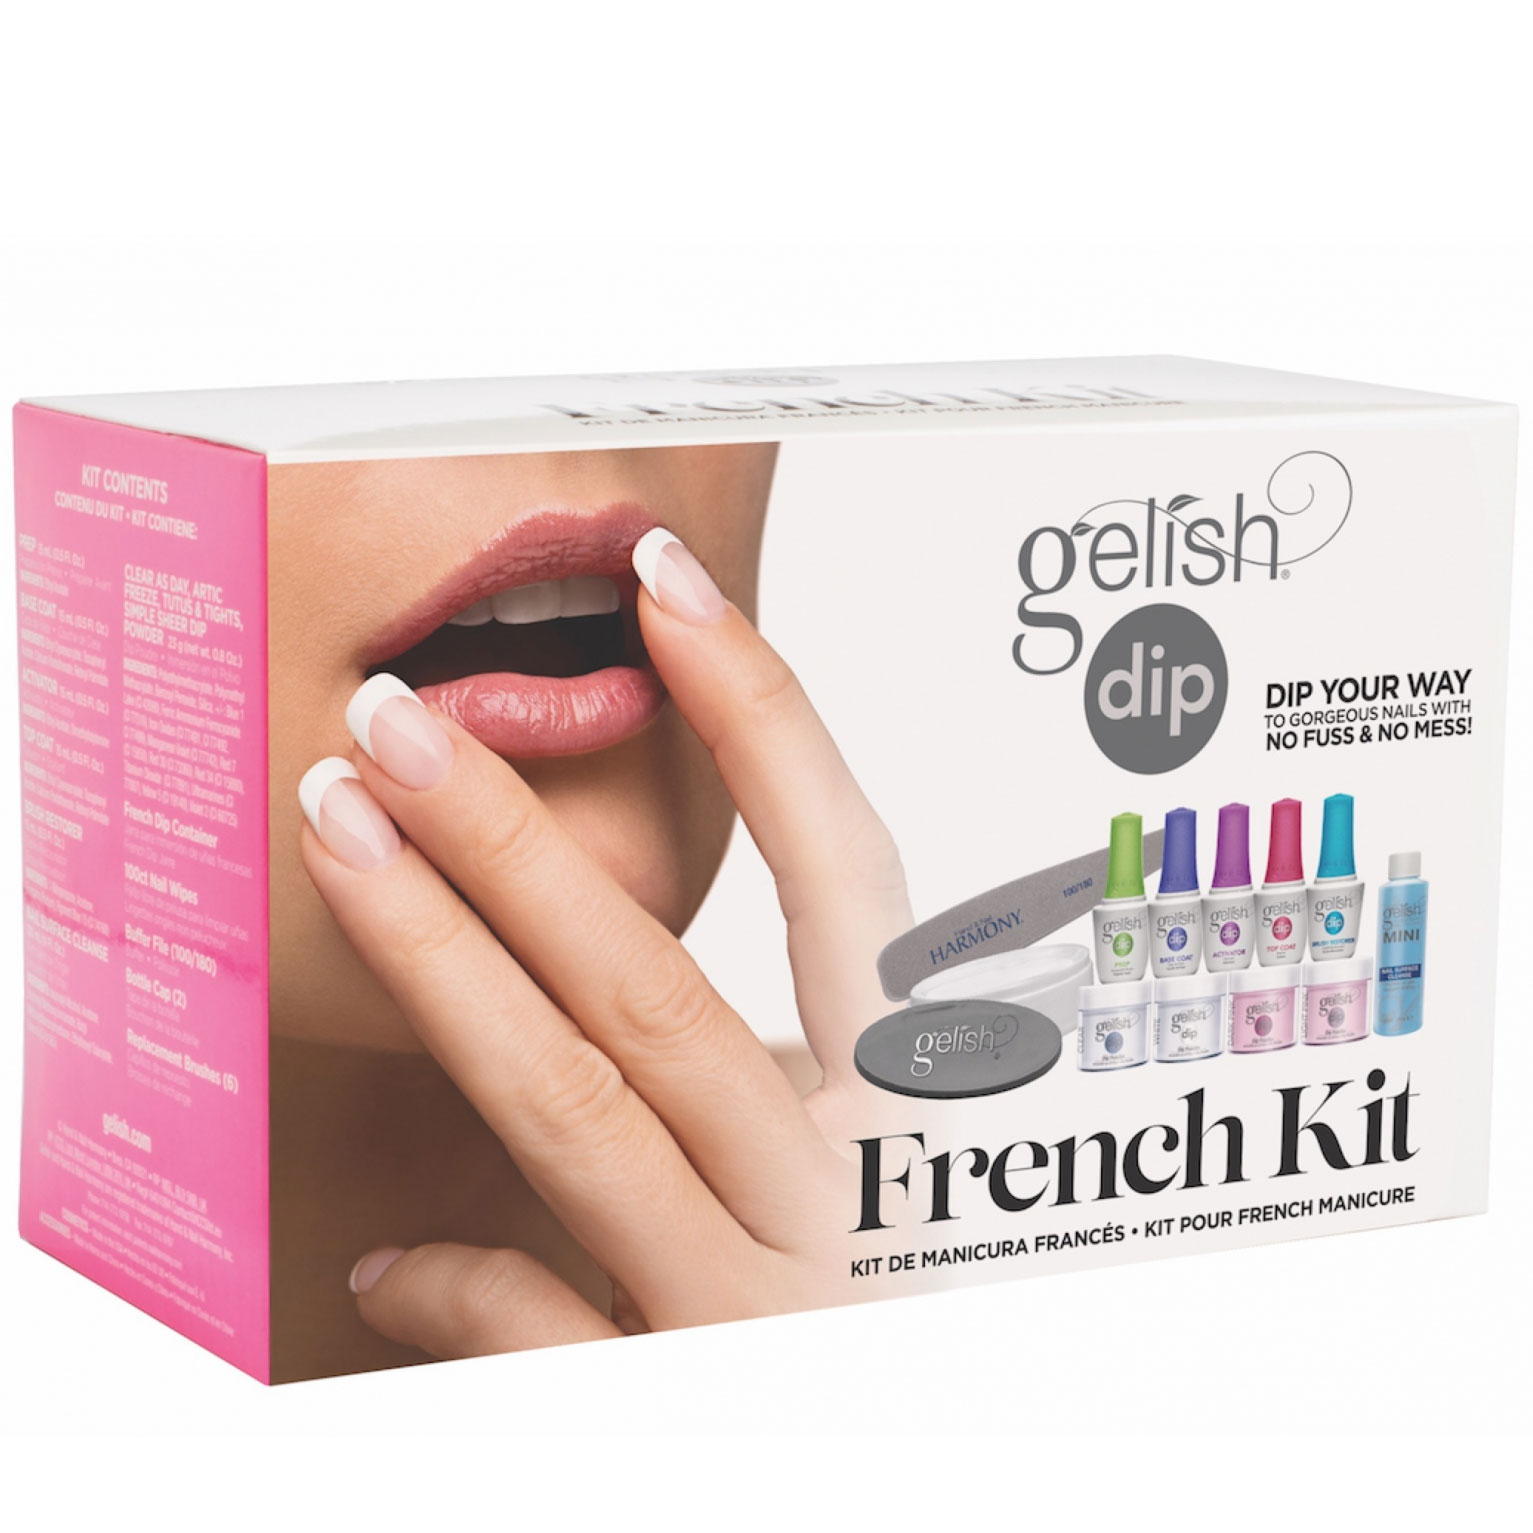 Nail Dip Powder Non Acrylic: Gelish Soak Off French Tip Acrylic Powder Nail Polish Dip